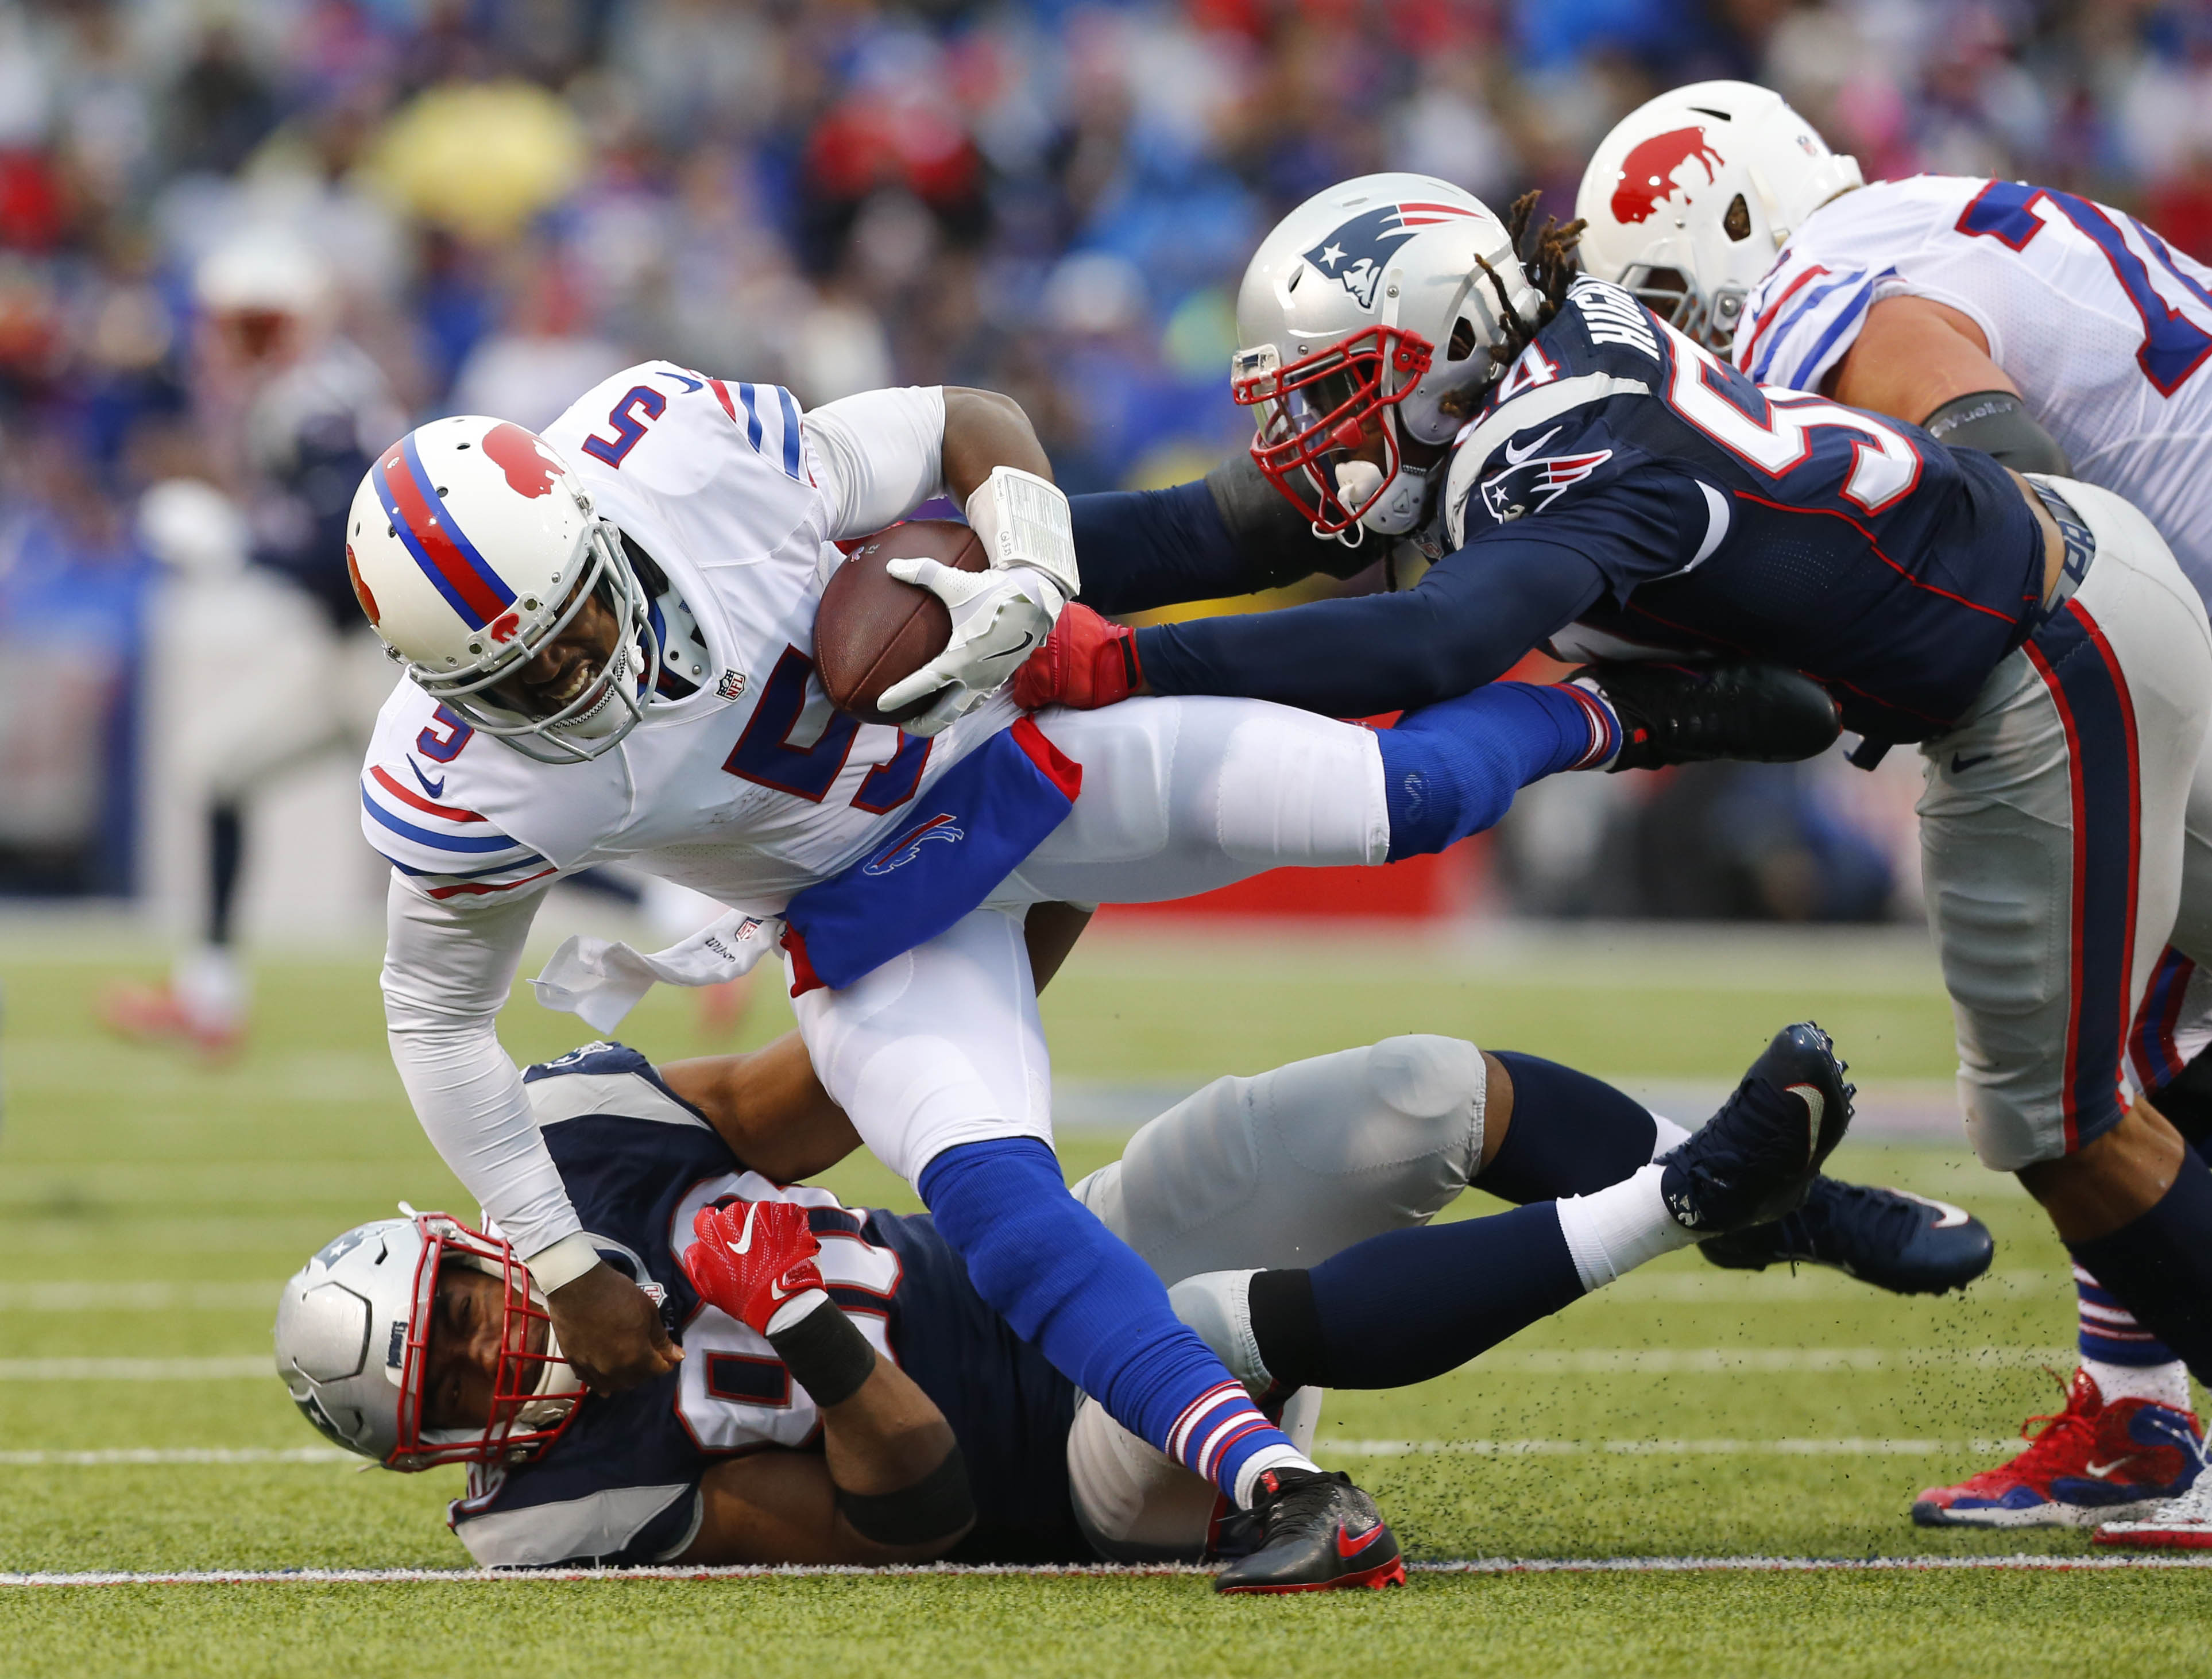 Buffalo Bills quarterback Tyrod Taylor (5) gets tackled by New England Patriots Malcom Brown (90) and Dont'a Hightower (54) during the third quarter.   (Mark Mulville/Buffalo News)